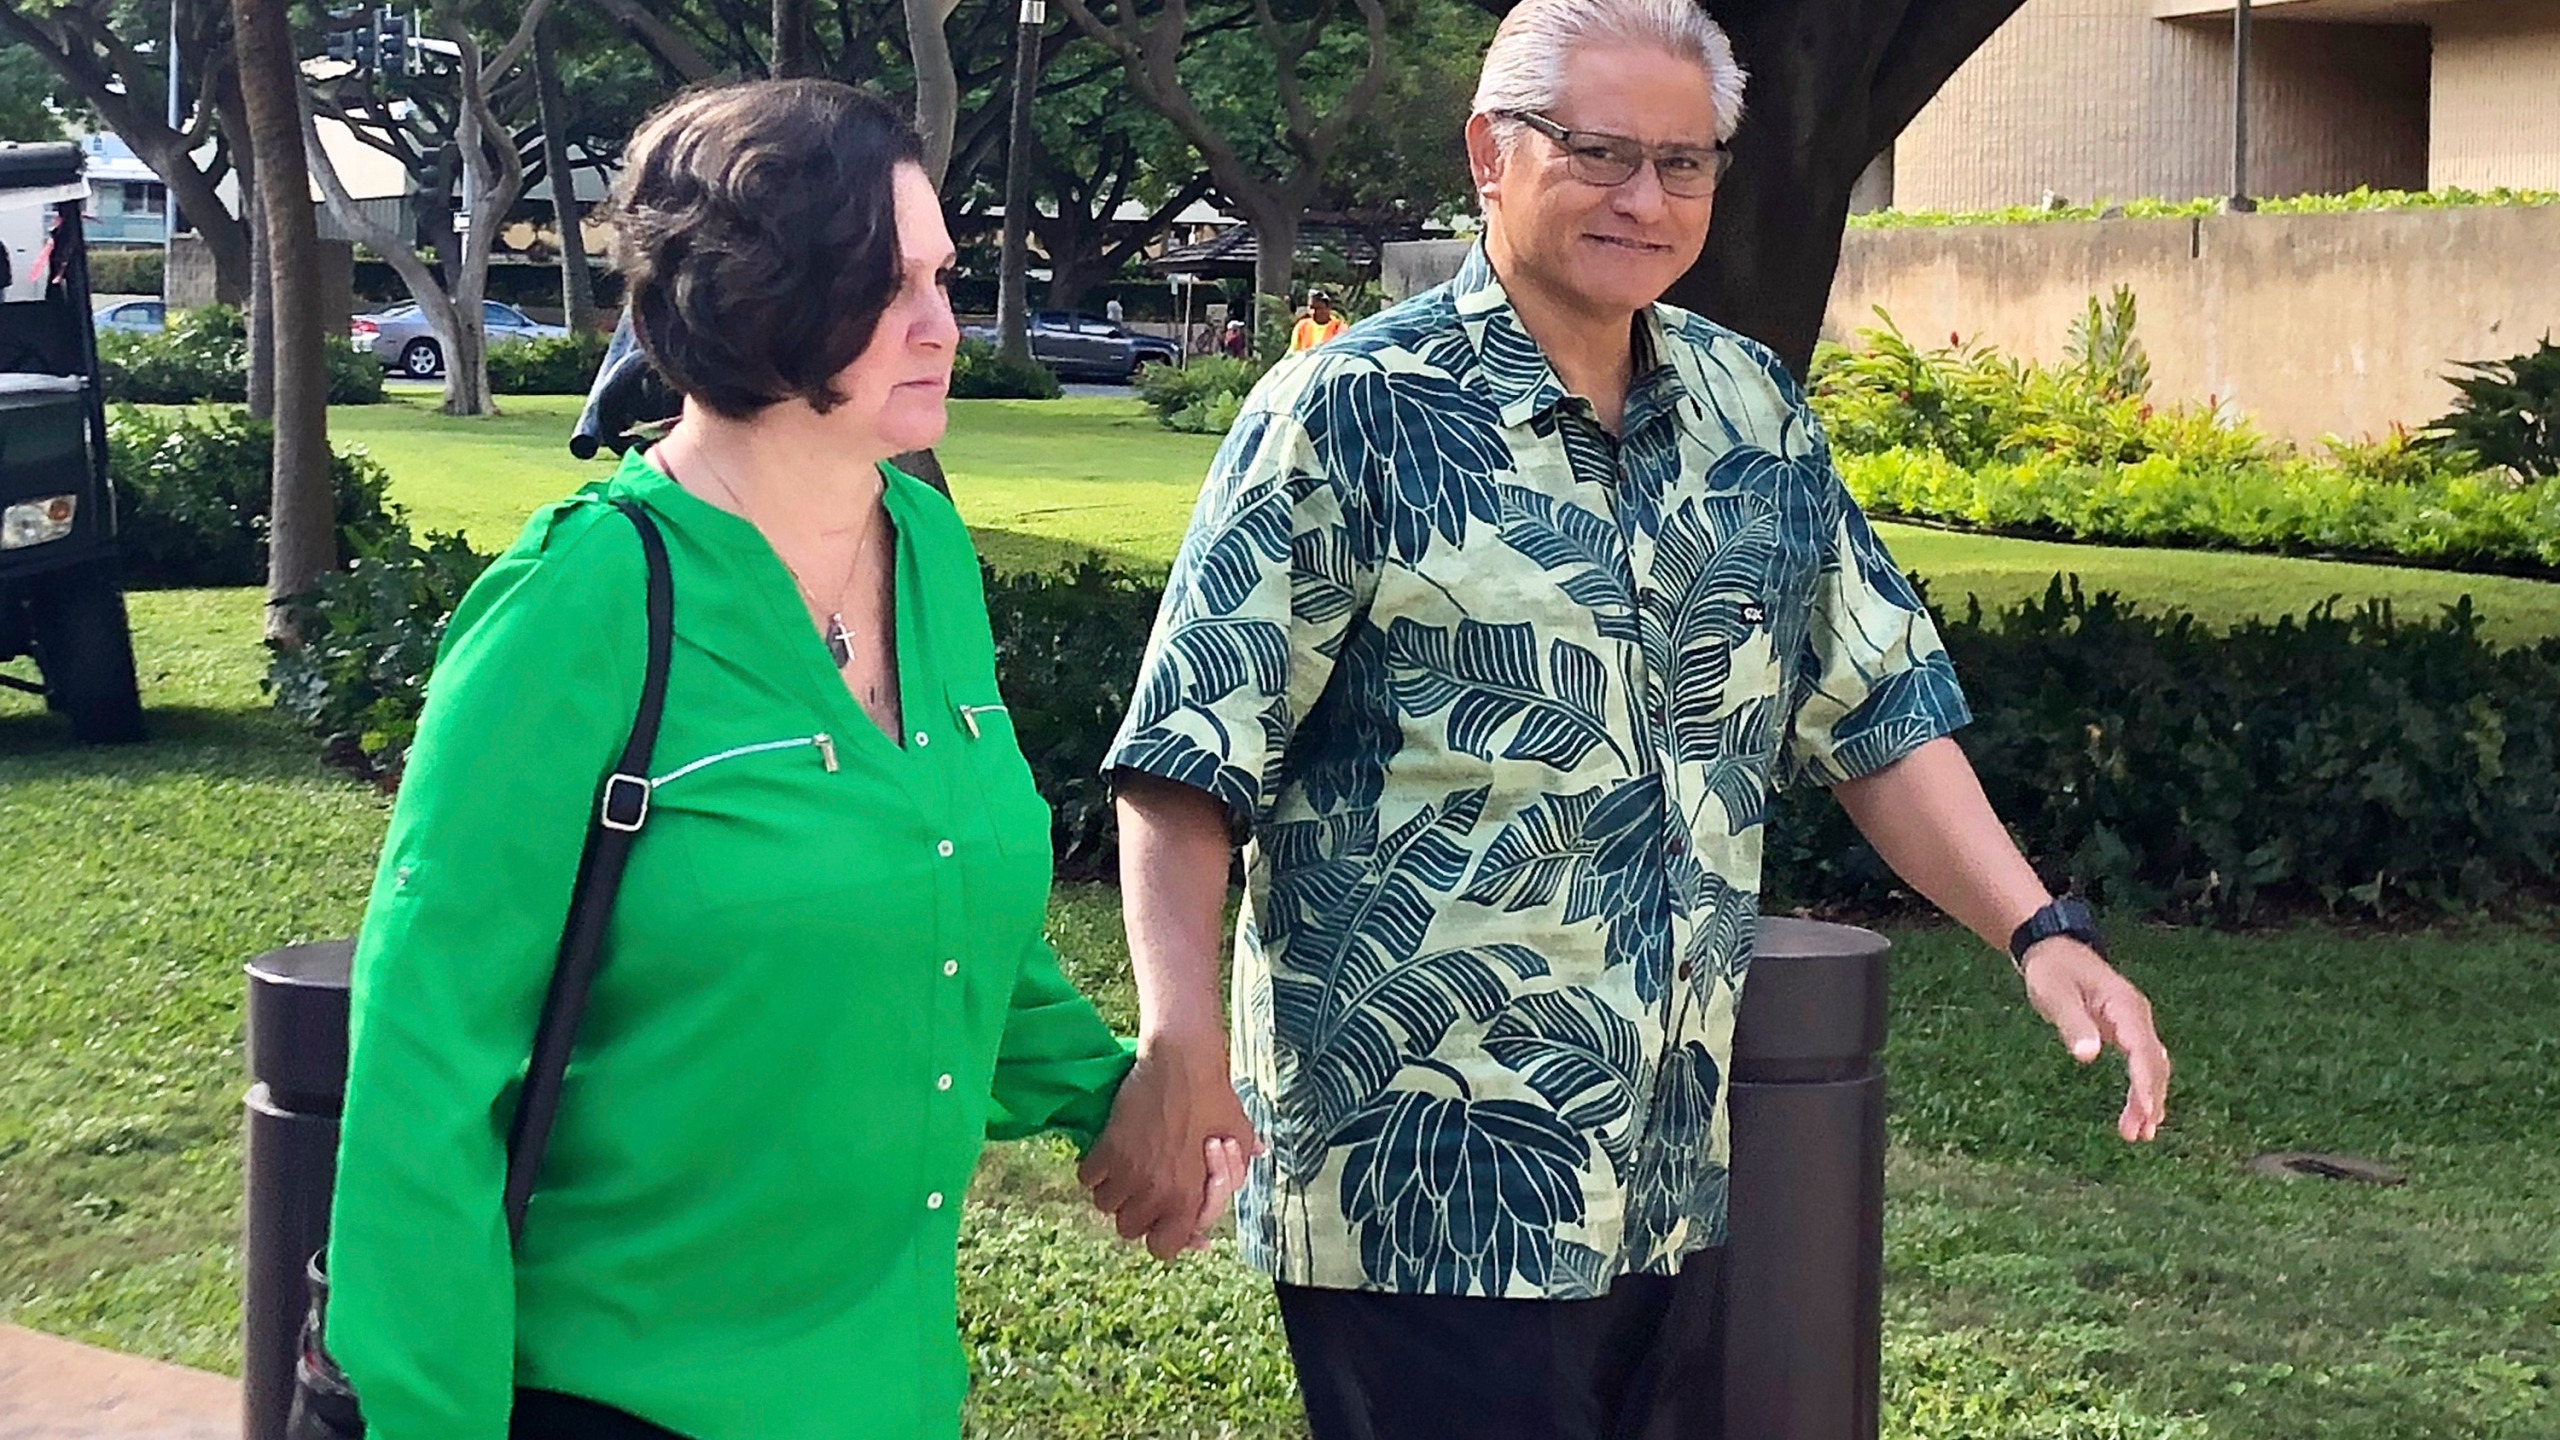 In this March 12, 2019, file photo, retired Honolulu police chief Louis Kealoha and his wife, former deputy city prosecutor Katherine Kealoha, hold hands while walking to U.S. district court in Honolulu. (Jennifer Sinco Kelleher/AP Photo)